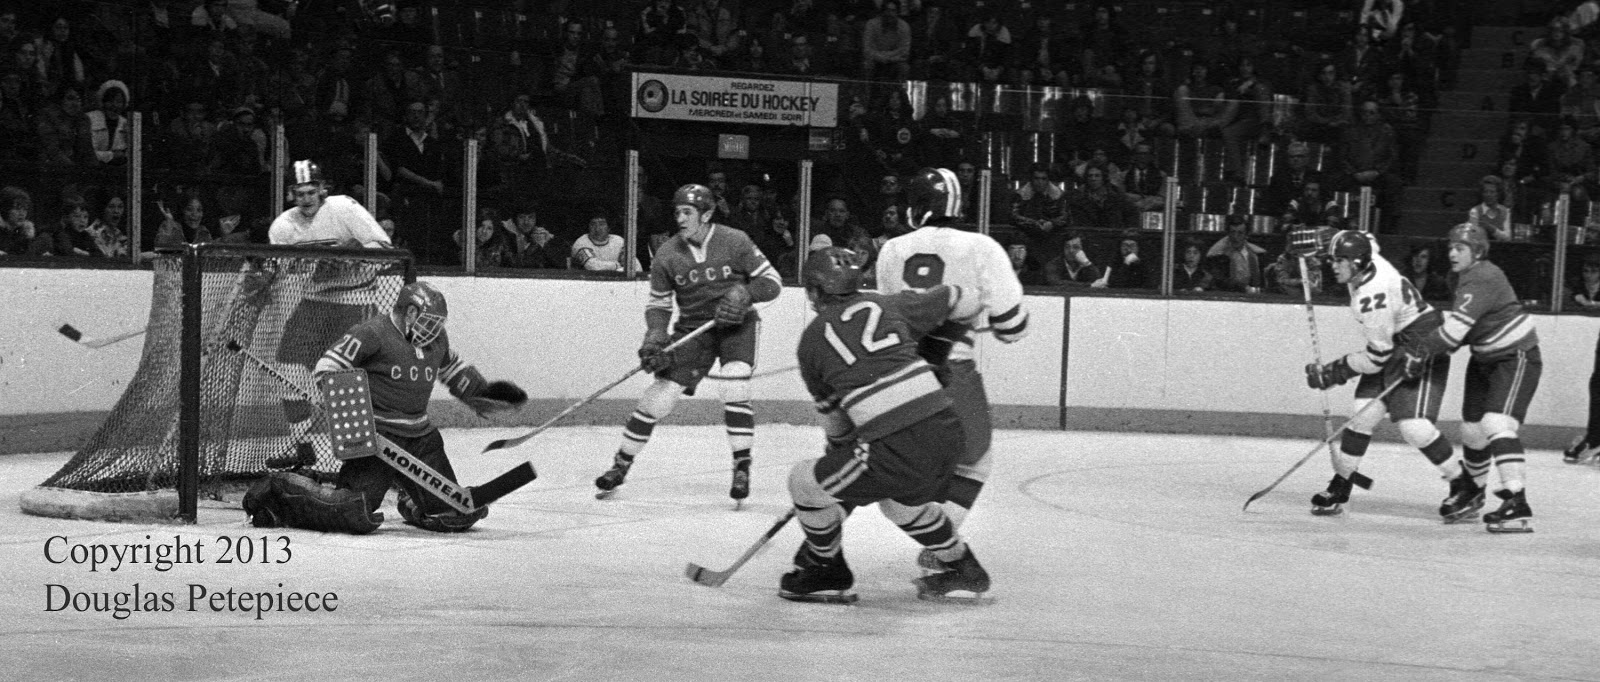 Montreal Juniors vs Soviet Selects, Dec. 1974 4.jpg